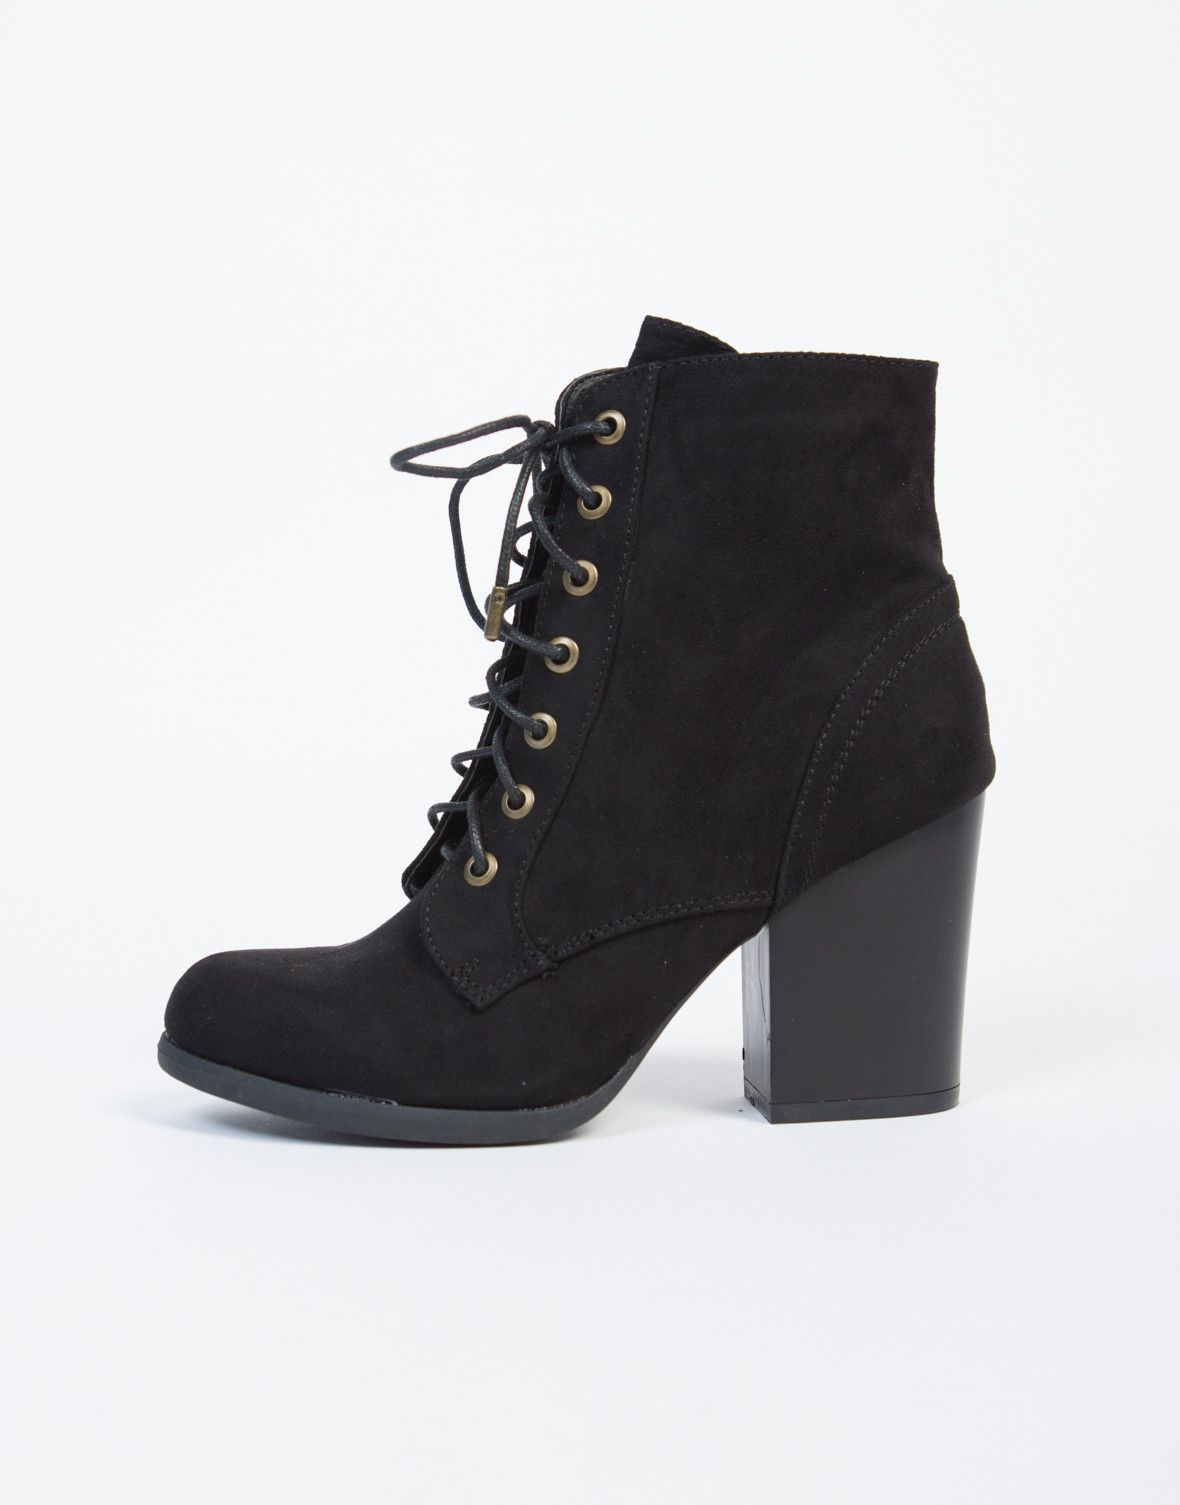 Lace-Up Wooden Heel Ankle Boots | Boots